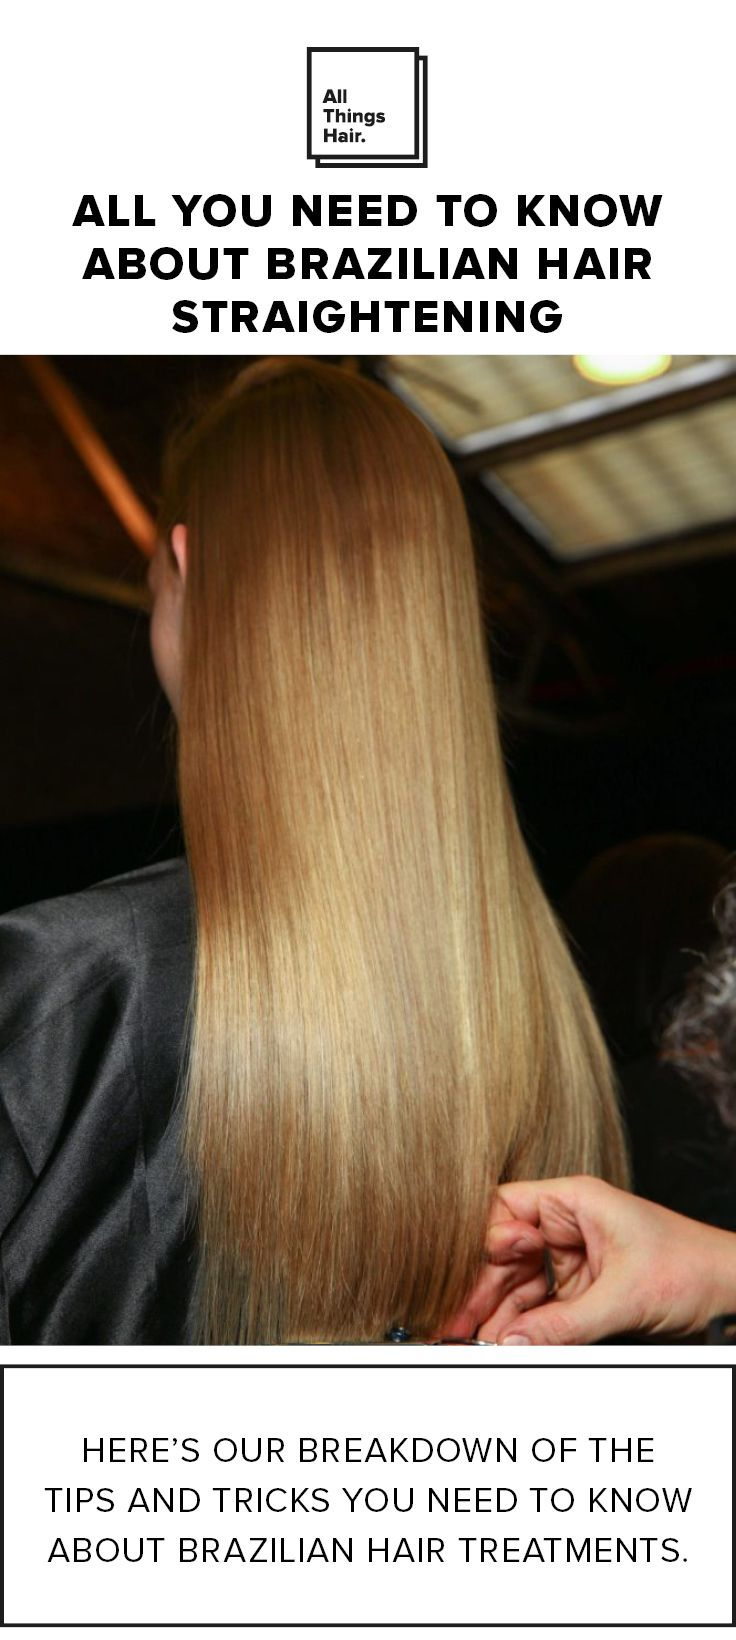 Straight perm edinburgh - Thinking About Straightening Your Hair Learn More About The Trendy Brazilian Hair Straightening Technique And If It Can Work For You